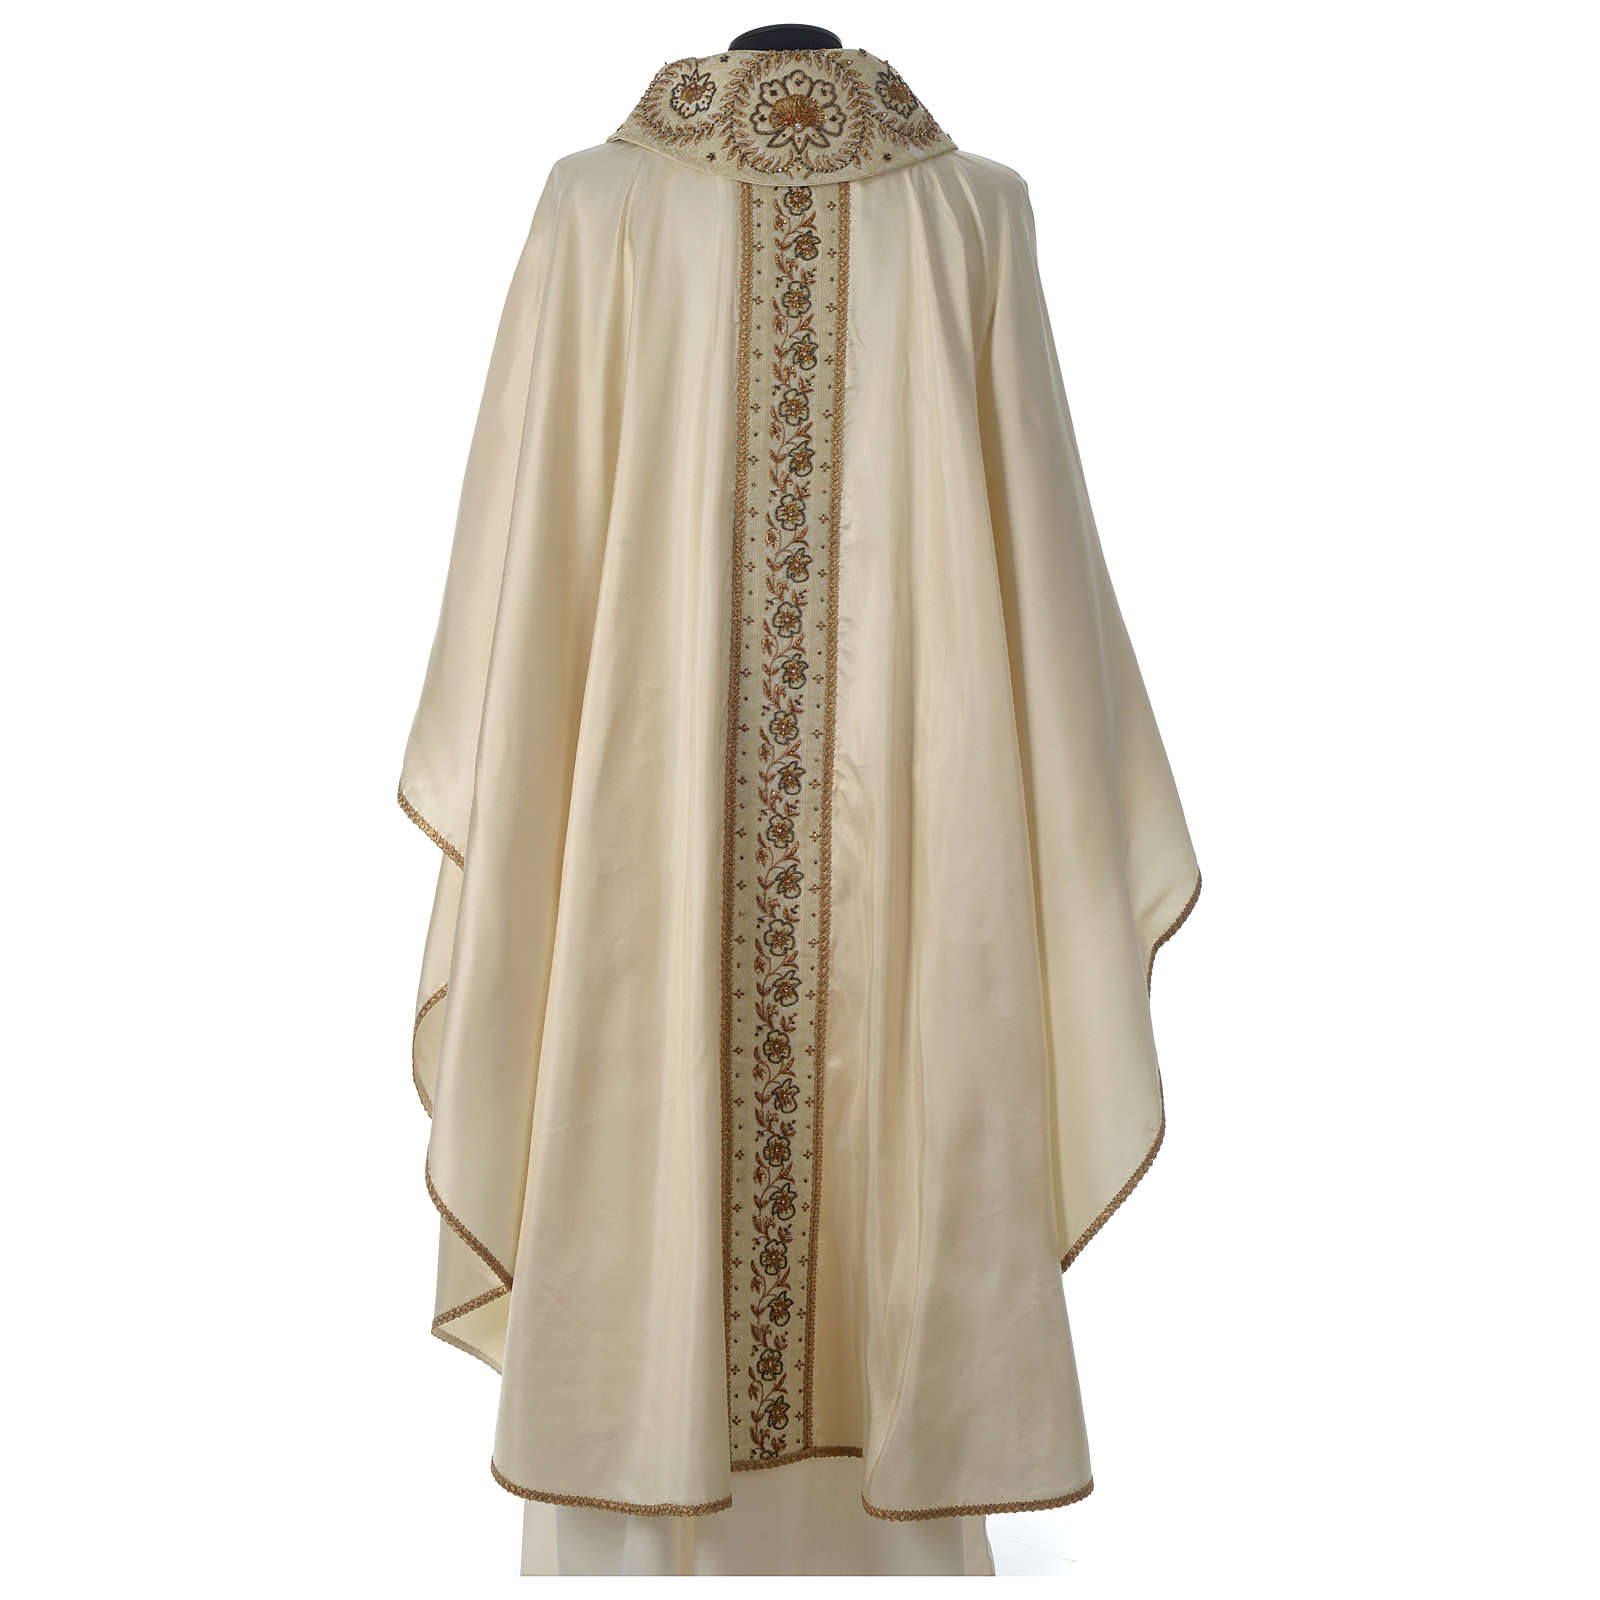 Chasuble 100% silk with handmade embroidery on gallon, V neckline 4